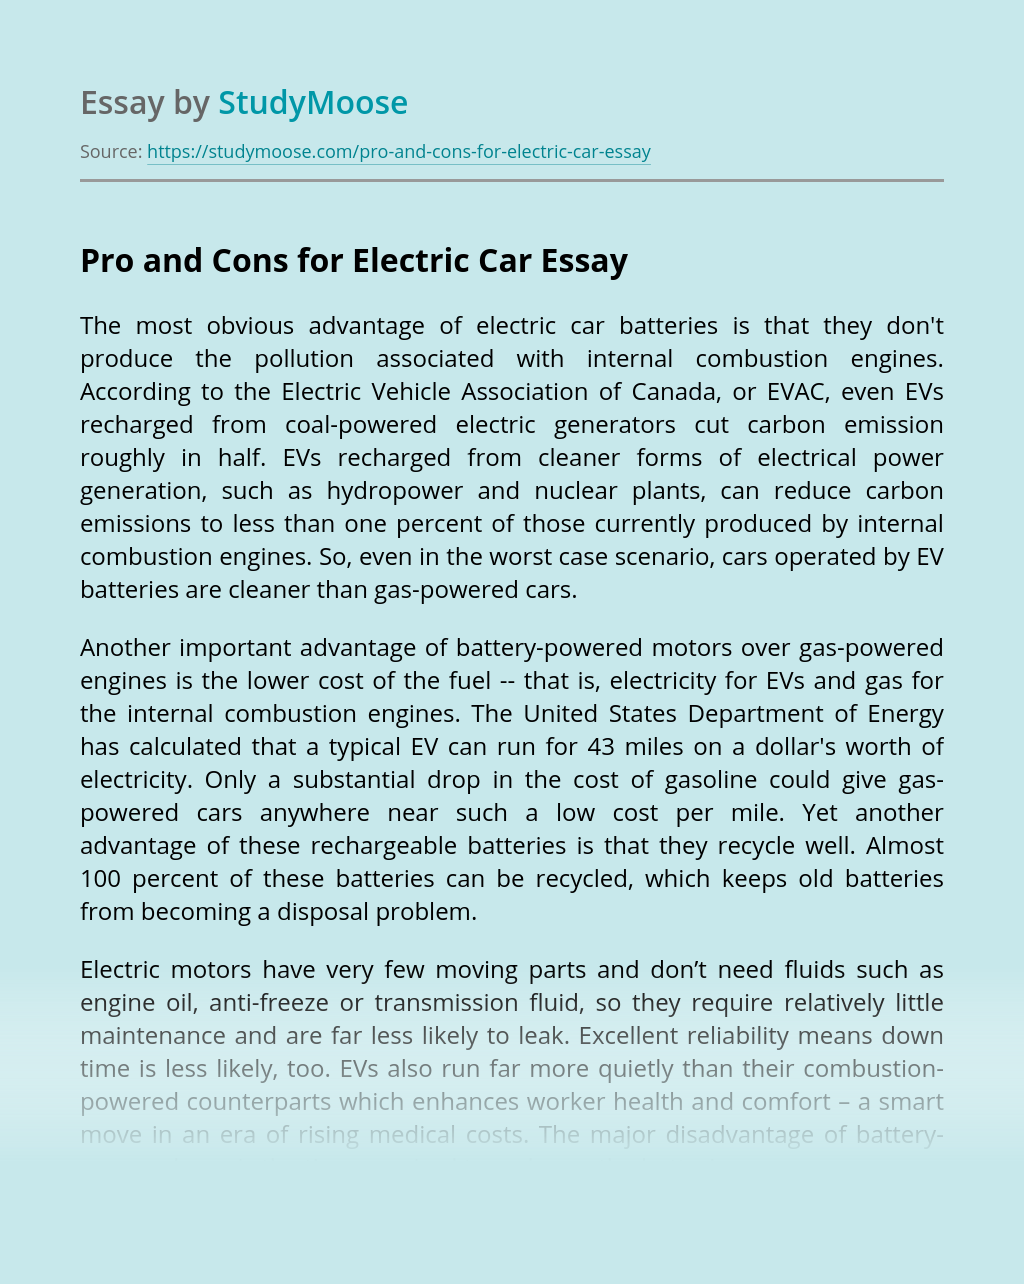 Pro and Cons for Electric Car